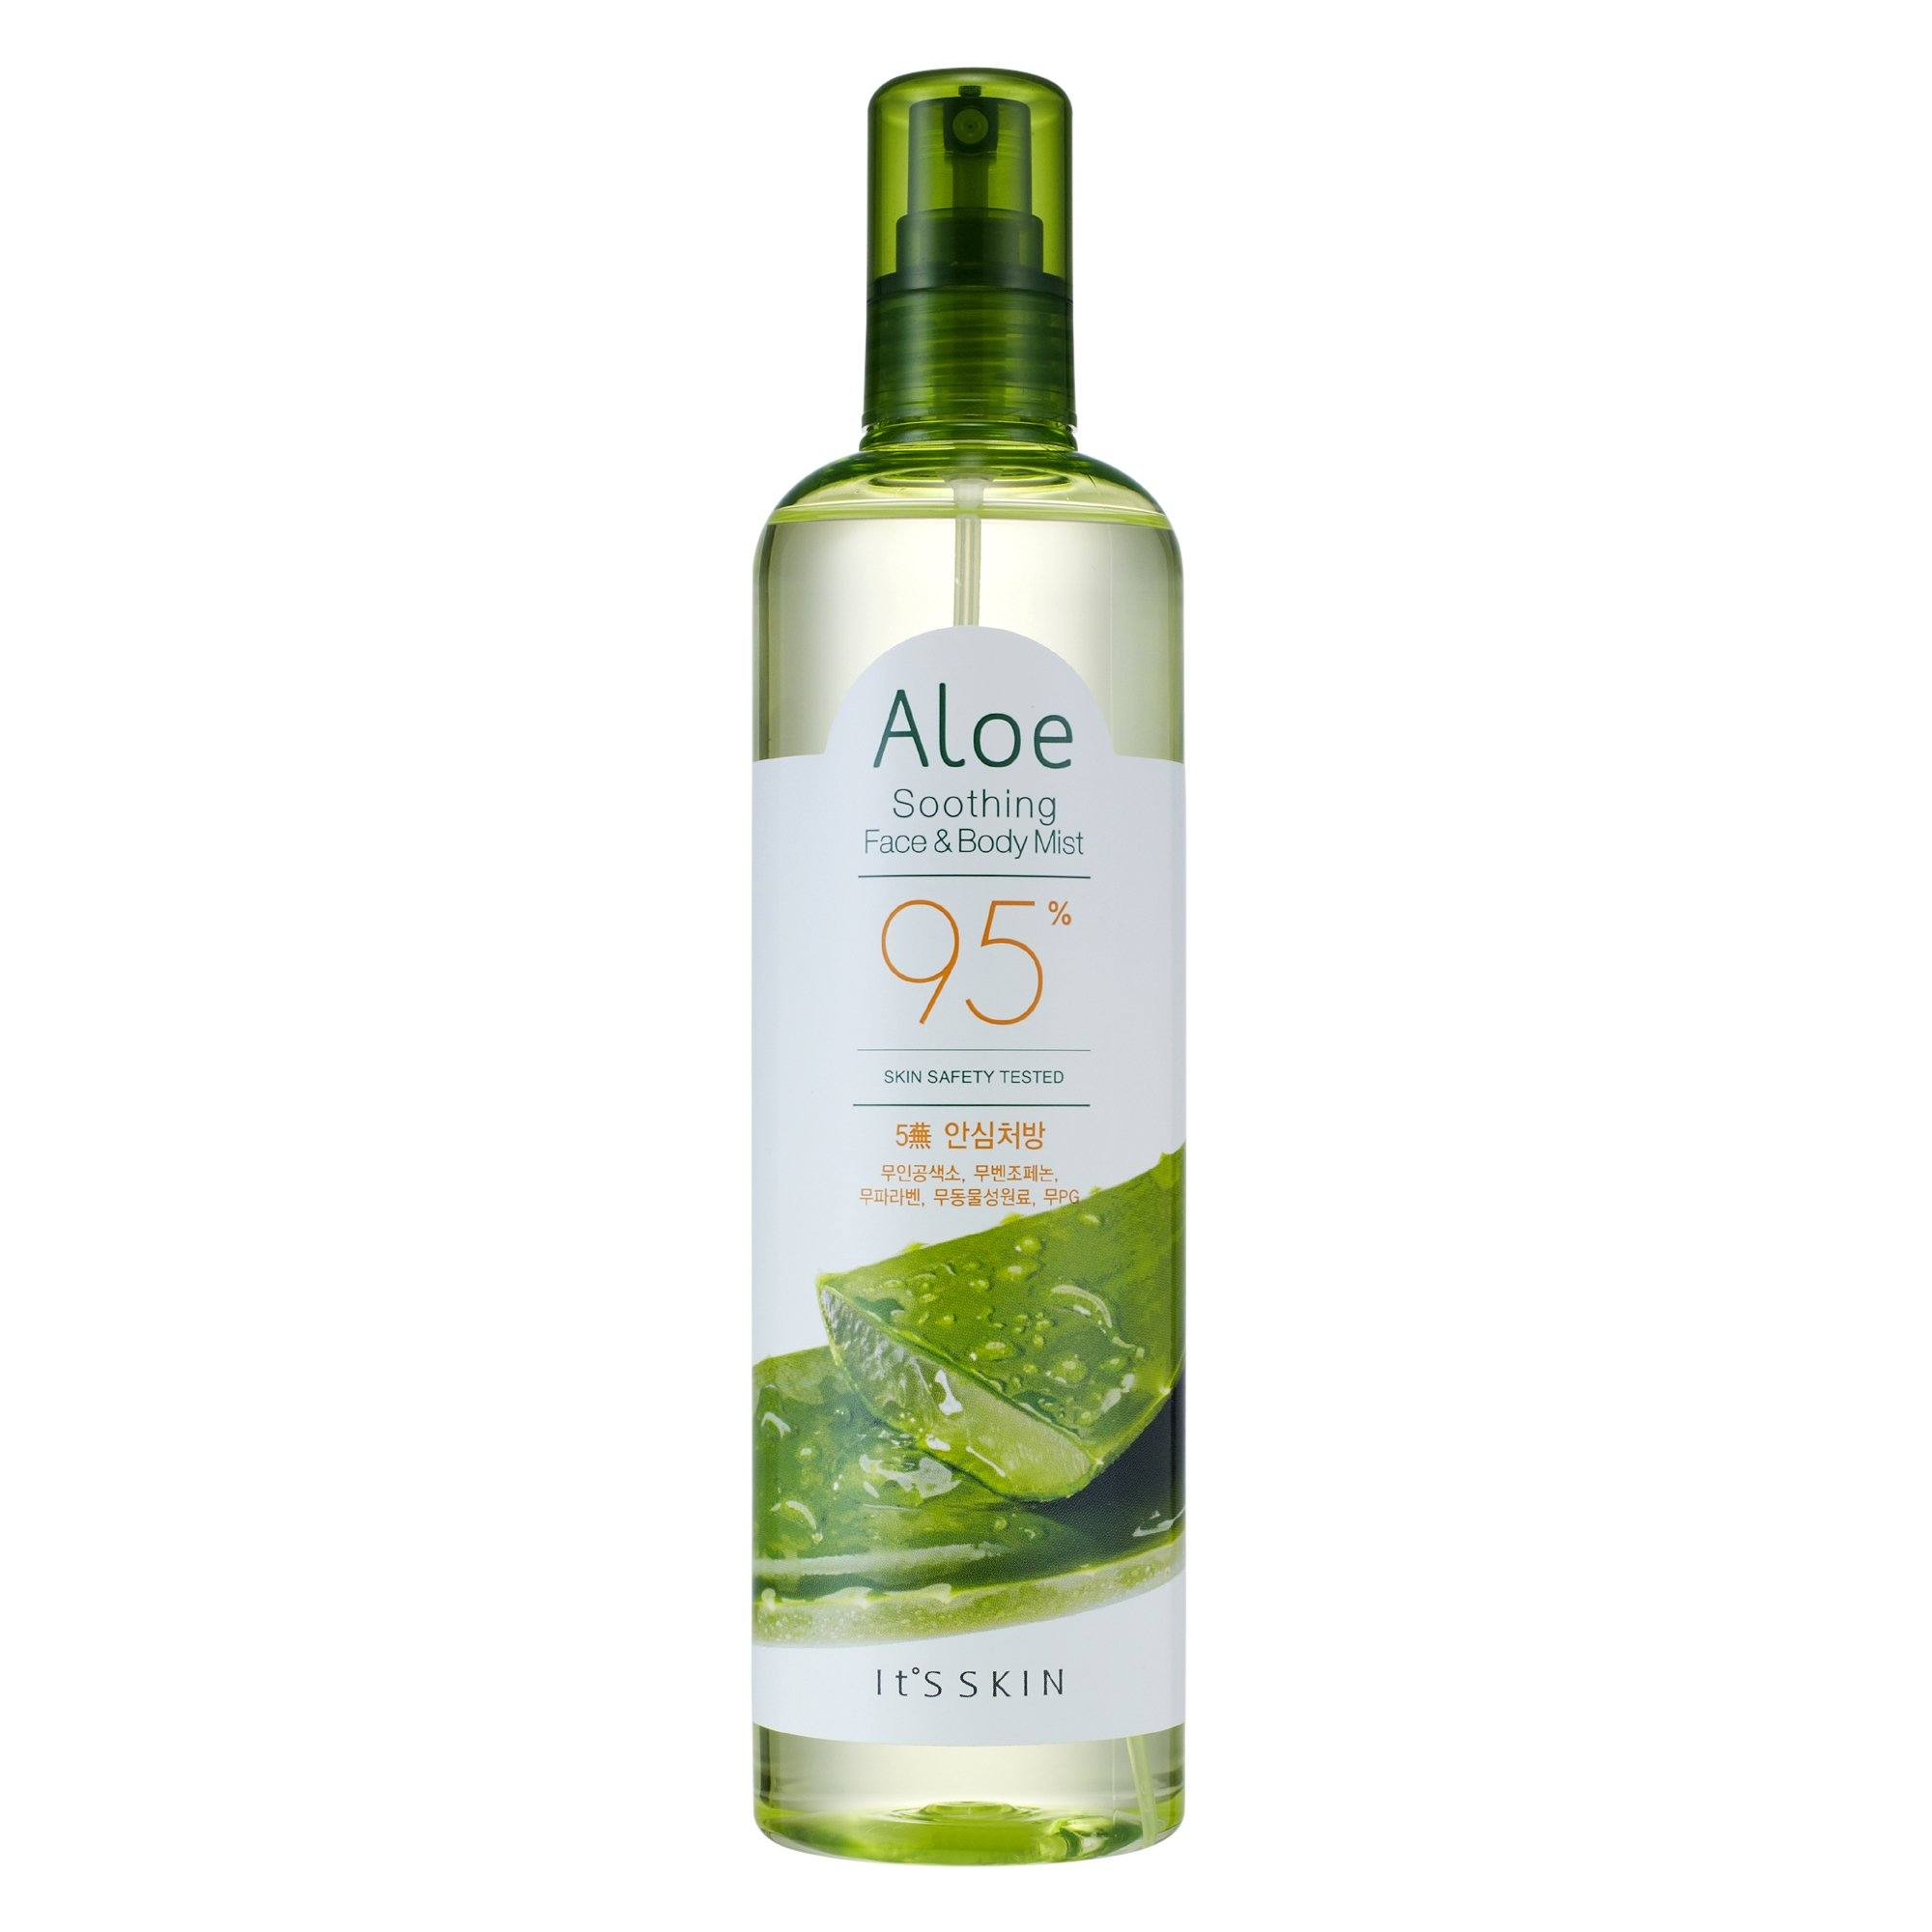 Health & Beauty > Personal Care > Cosmetics > Skin Care > Lotion & Moisturizer - ALOE Soothing Face & Body Mist 95% Mgiełka Do Twarzy 400 Ml